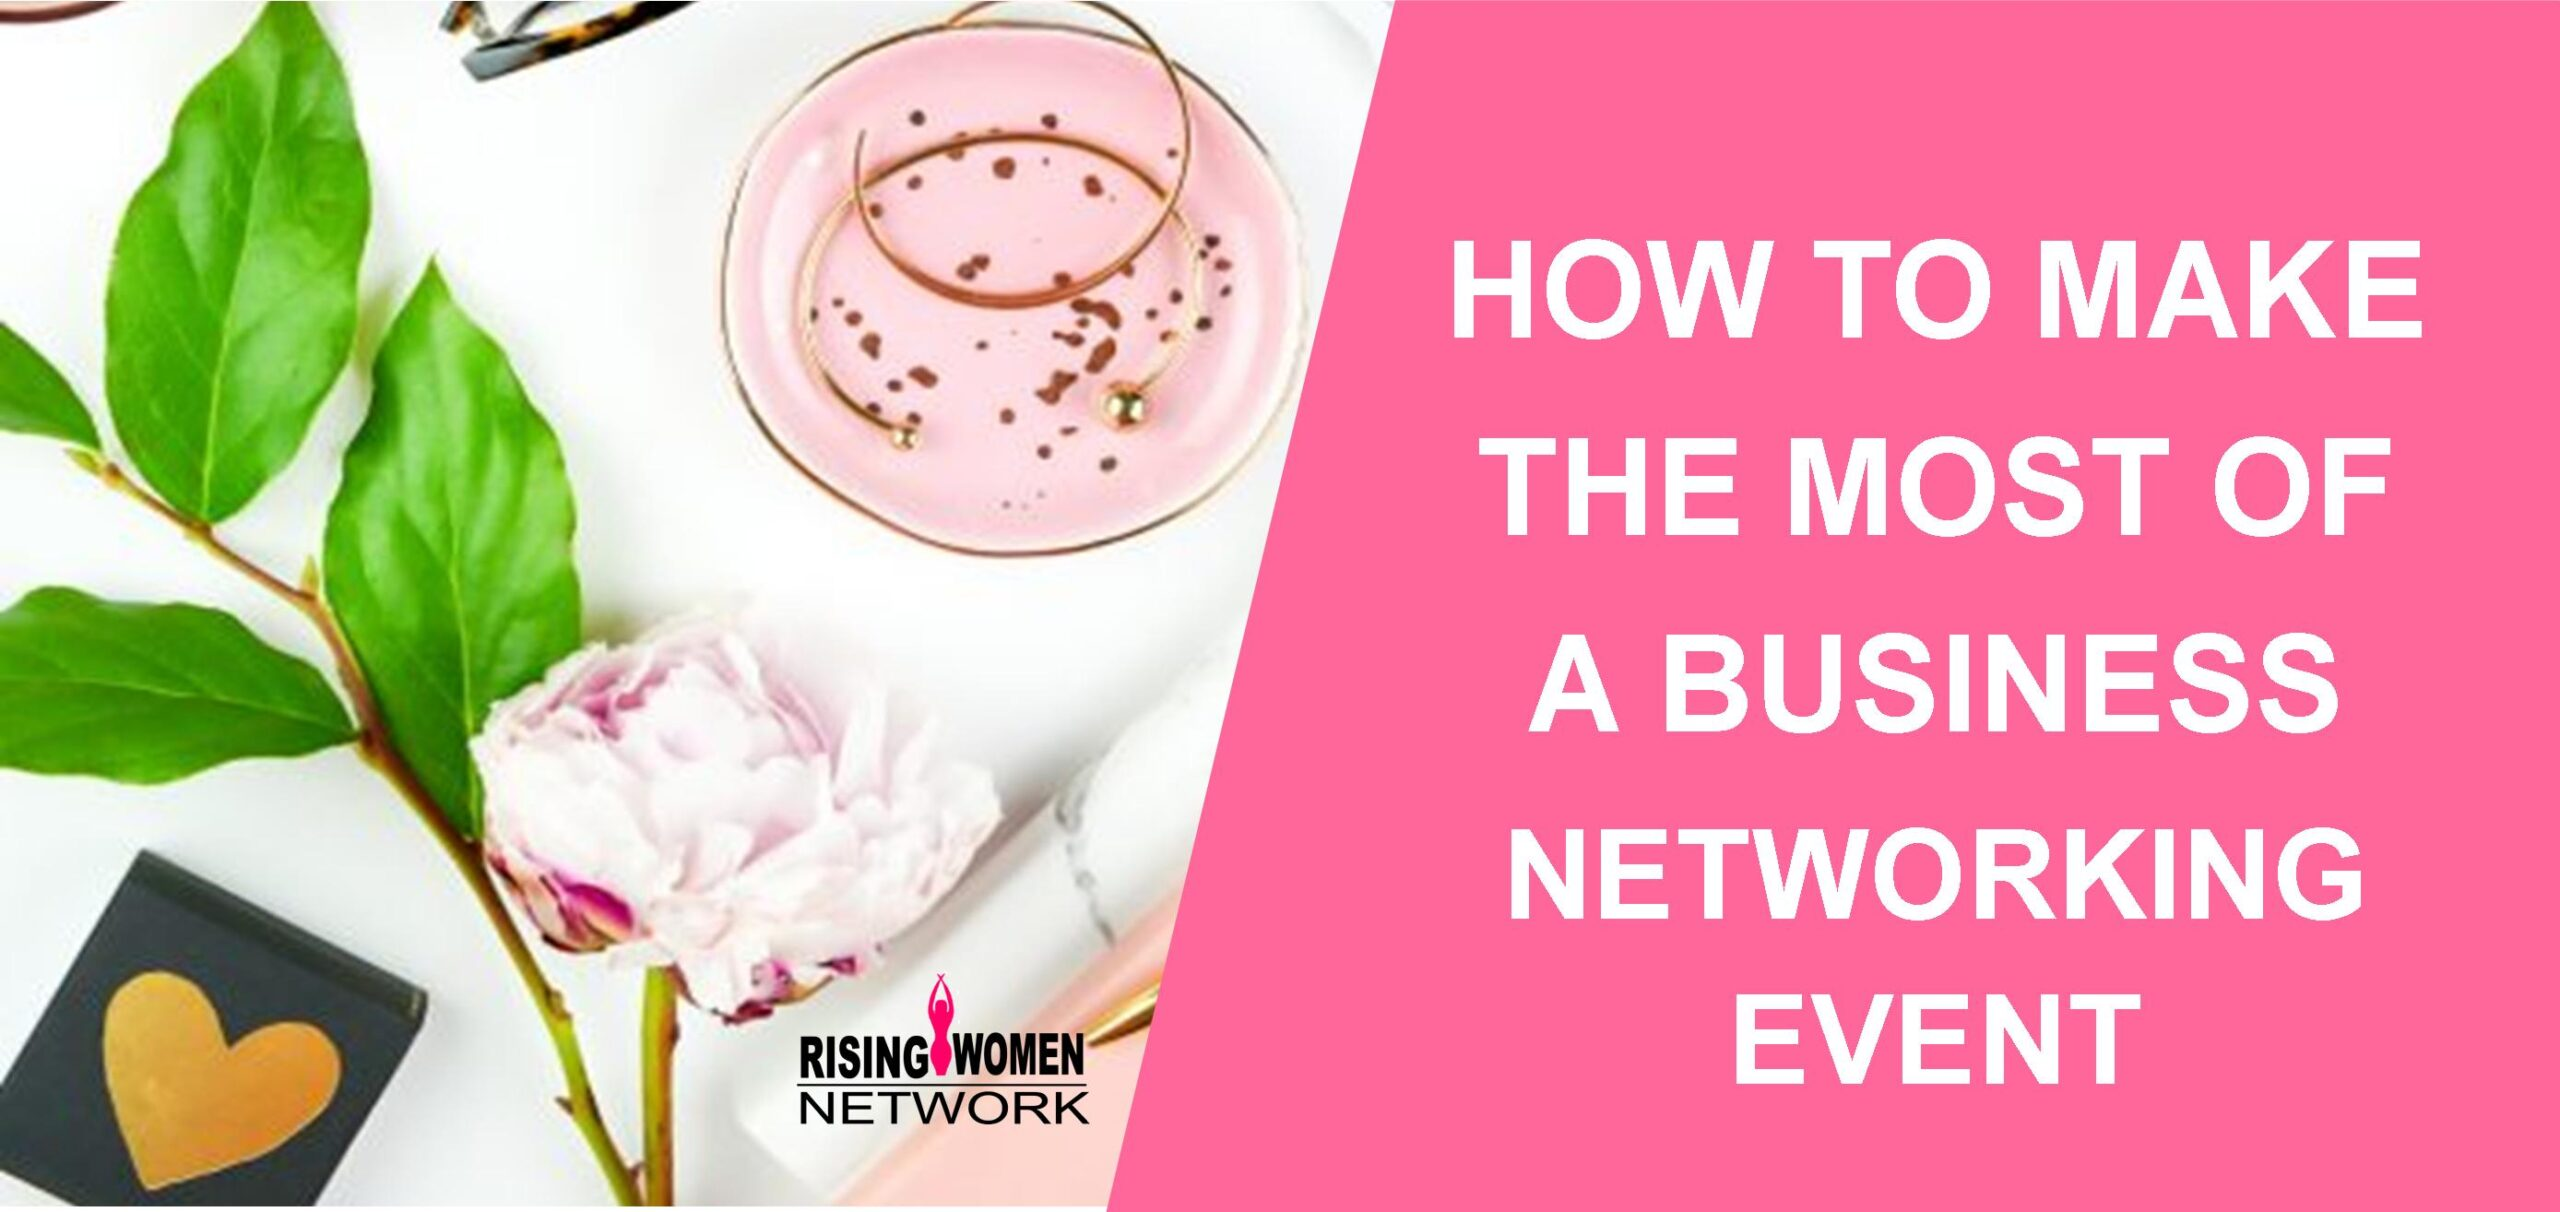 Business networking events can help you grow your business and allow you to do hands-on marketing research.Learning to mingle andfollow-up with business networking contacts is crucial to your small business success.The following techniques will assist you in connecting effectively with others.